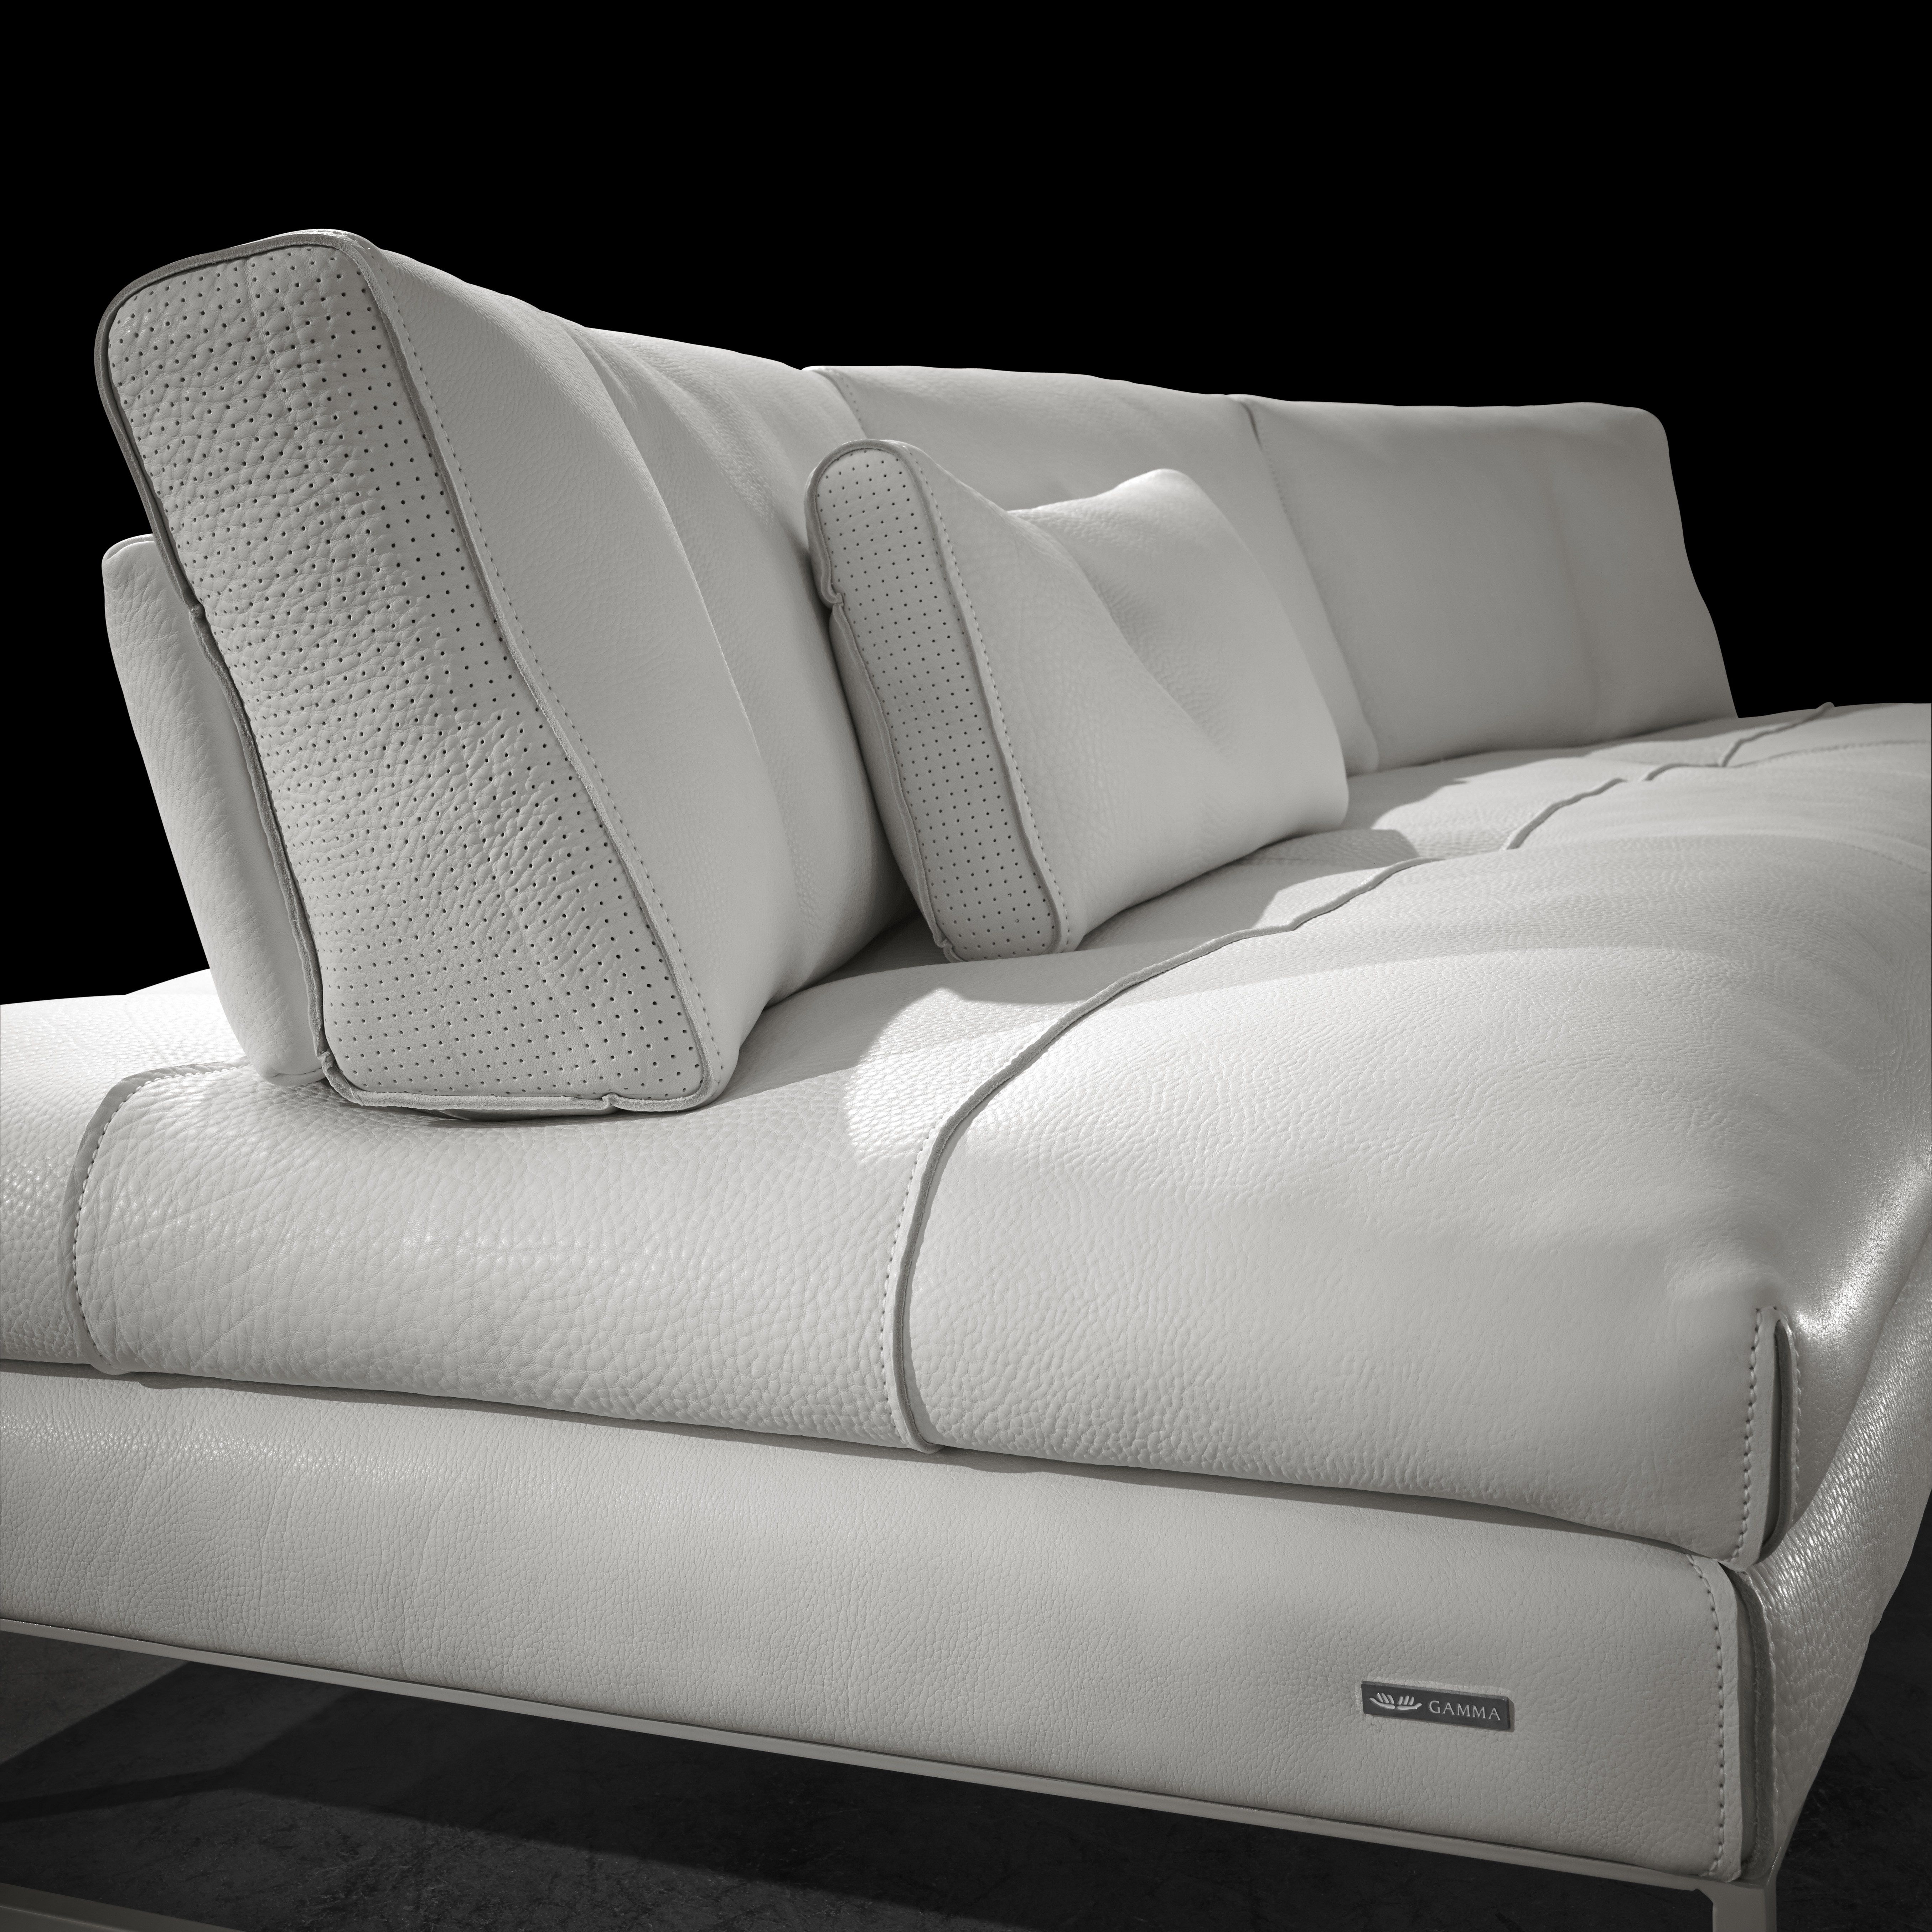 Gamma Sofas European Style Sofa Set Furniture Quotsunset Quot By Perforated Back Cushion Detail